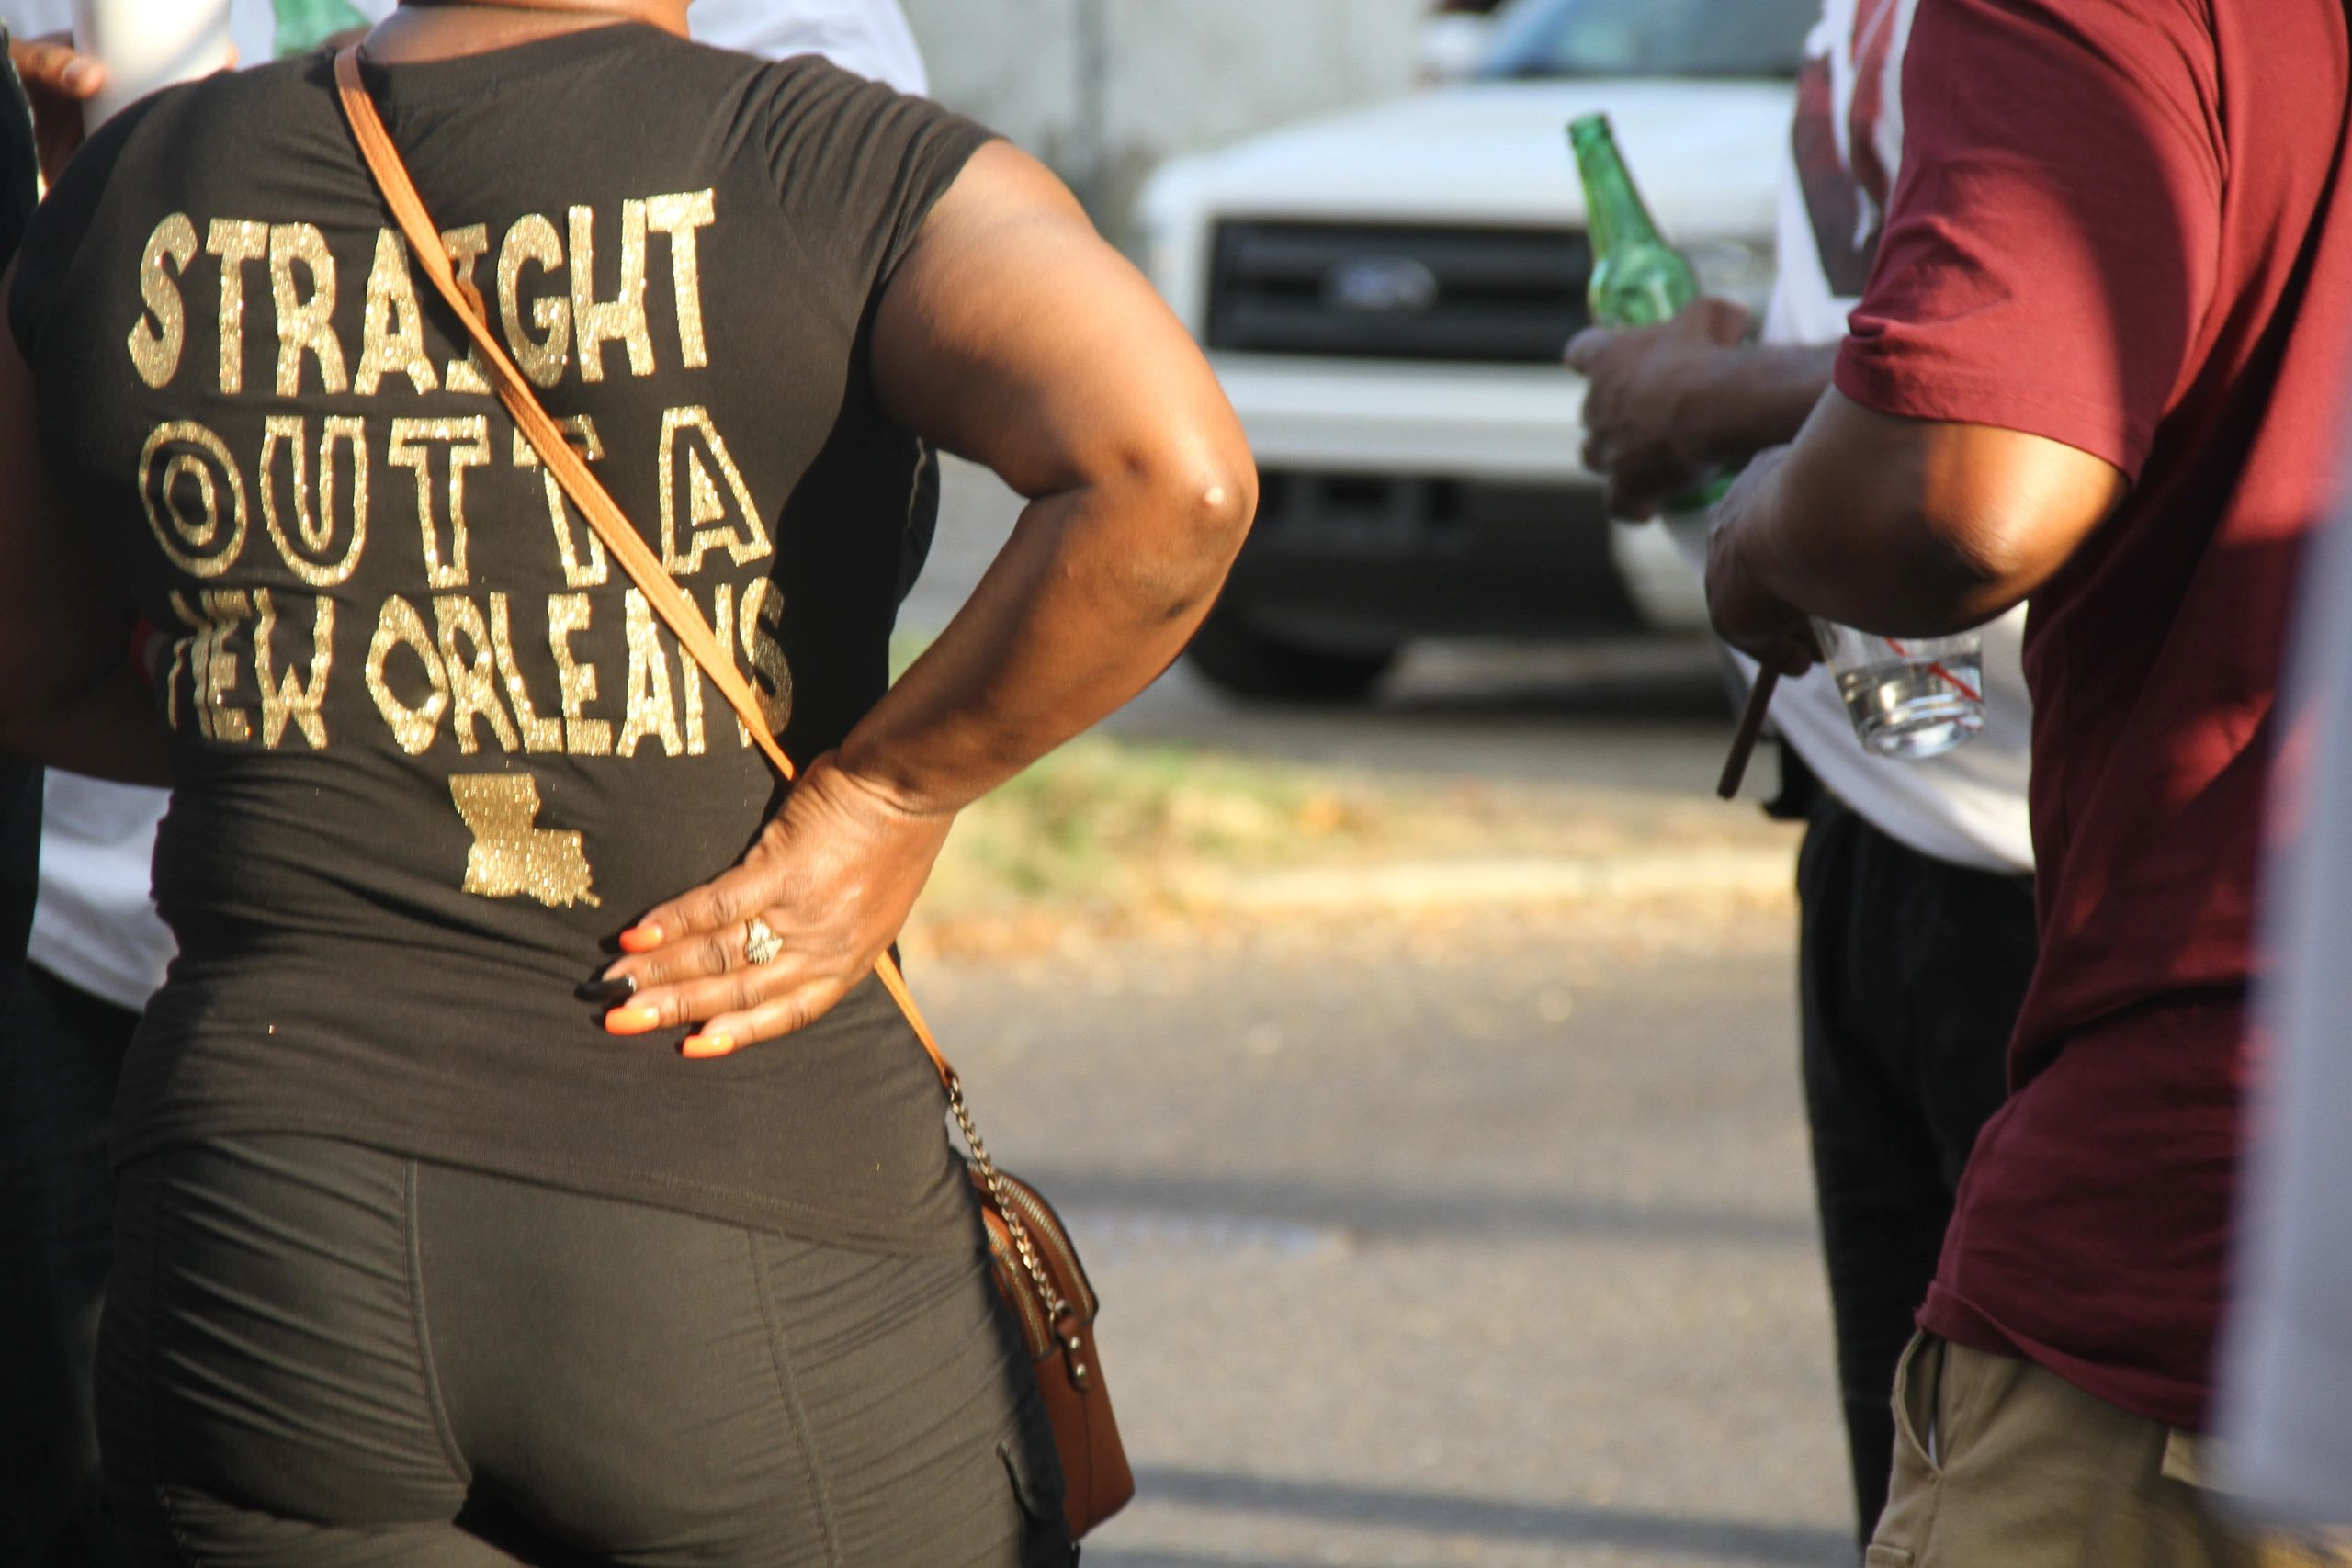 Fierce Funny & Fly documentary - Straight outta NOLA - Black Girl Giggles  movie cover image